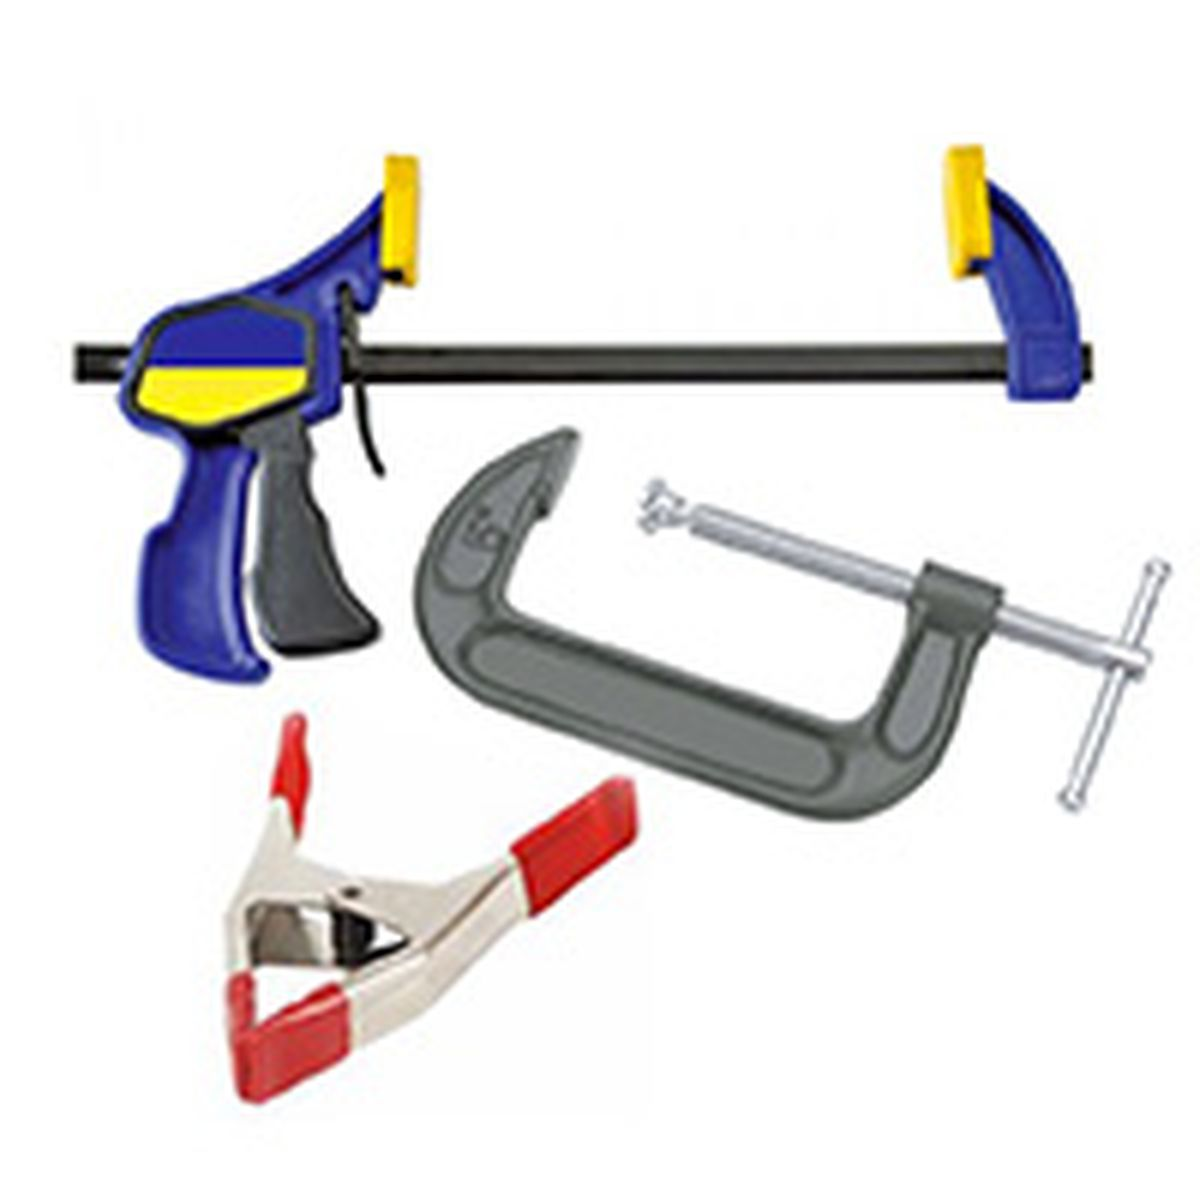 various clamps